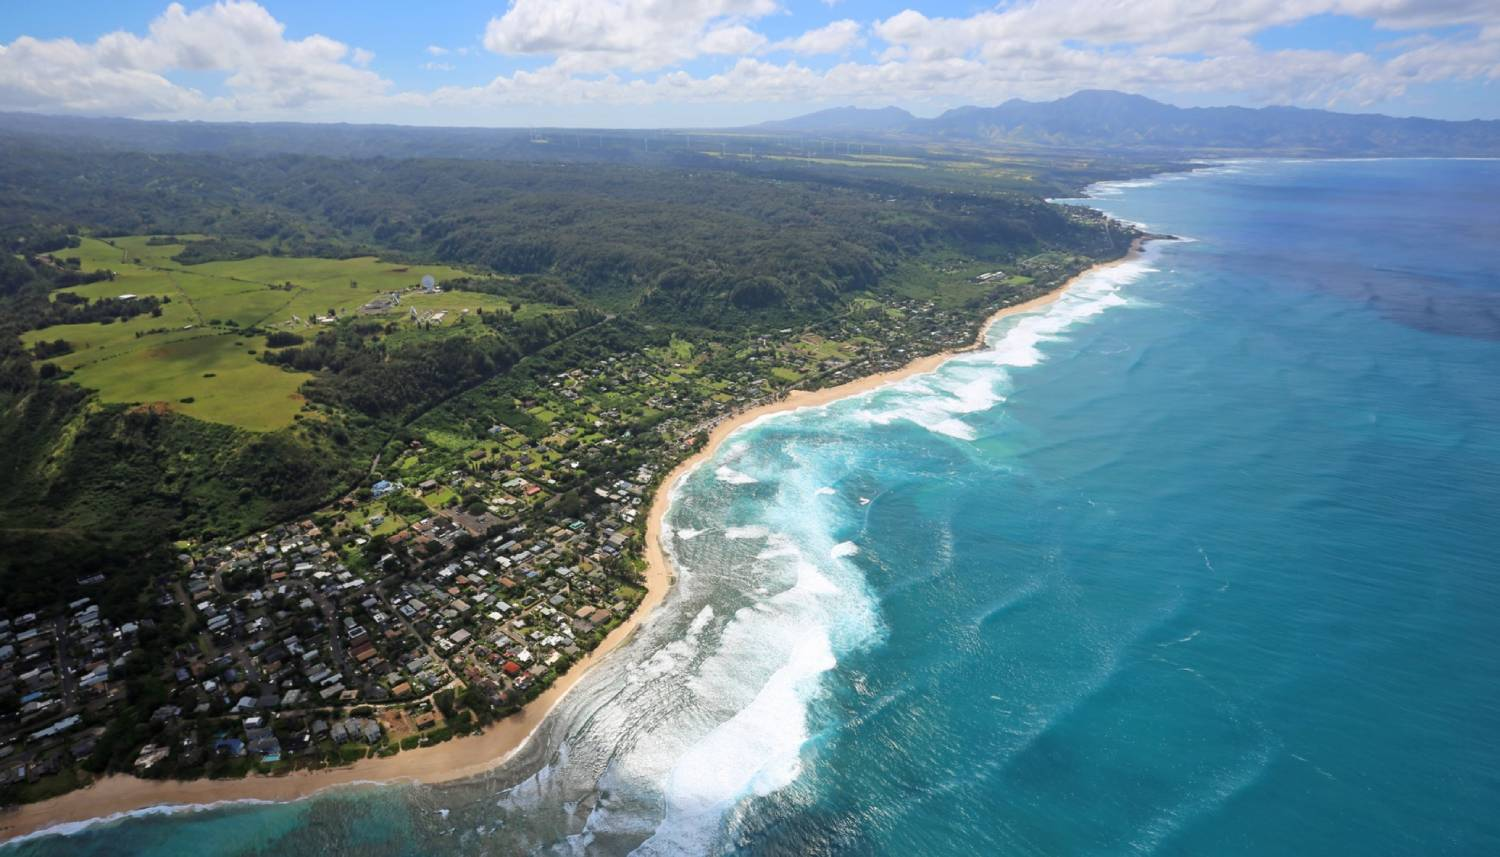 North Shore - Things To Do In Hawaii